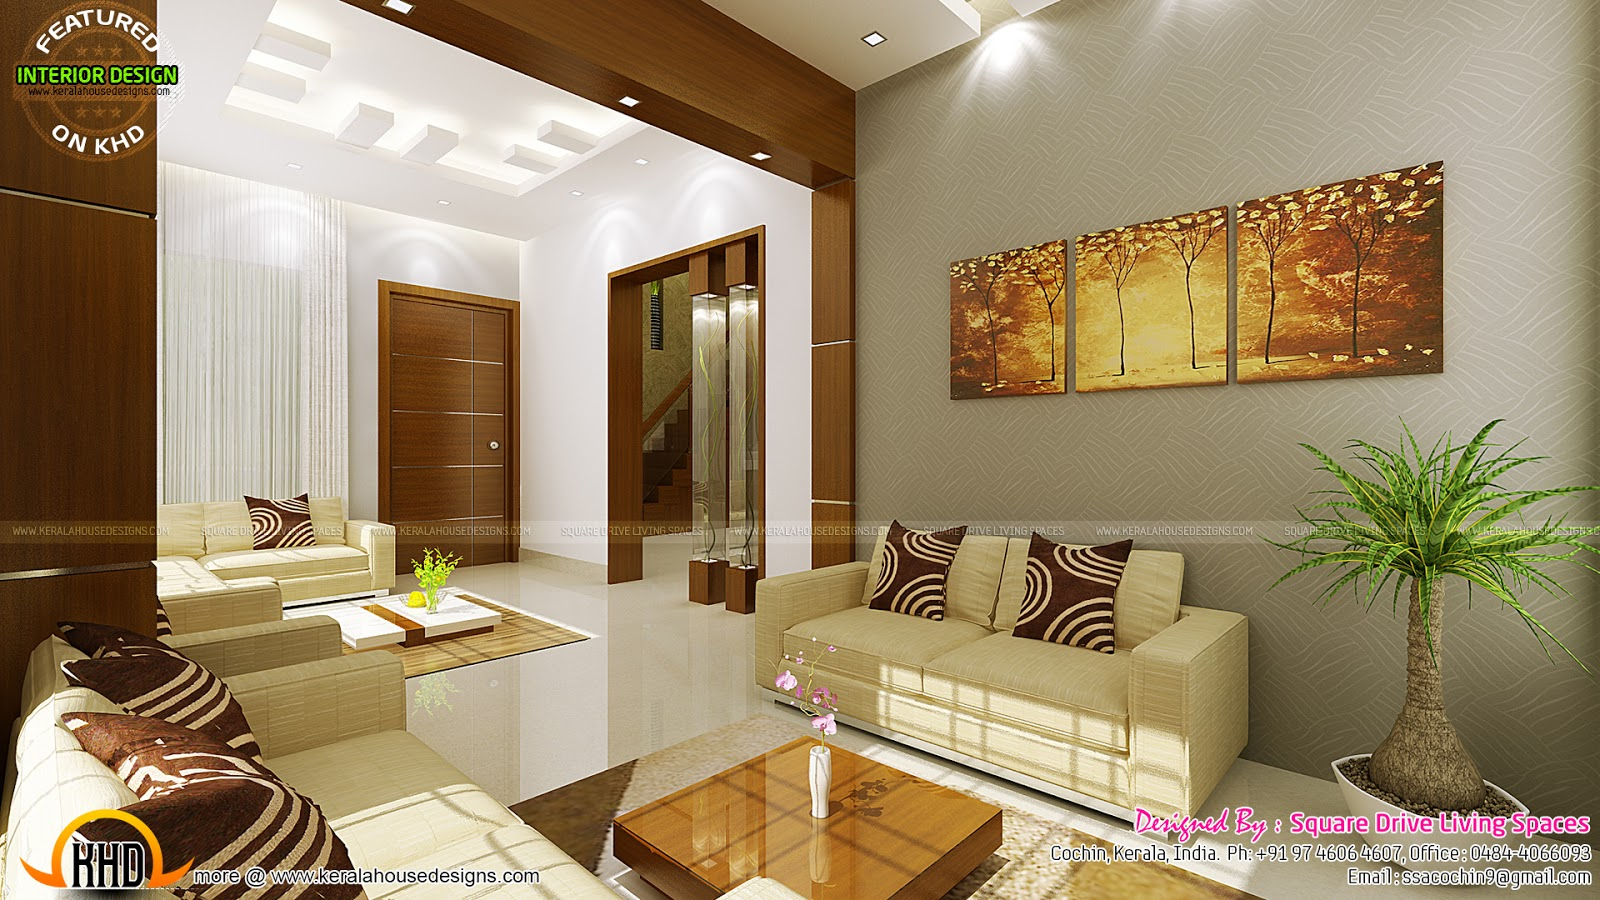 Contemporary kitchen dining and living room kerala home for Interior design for living room chennai